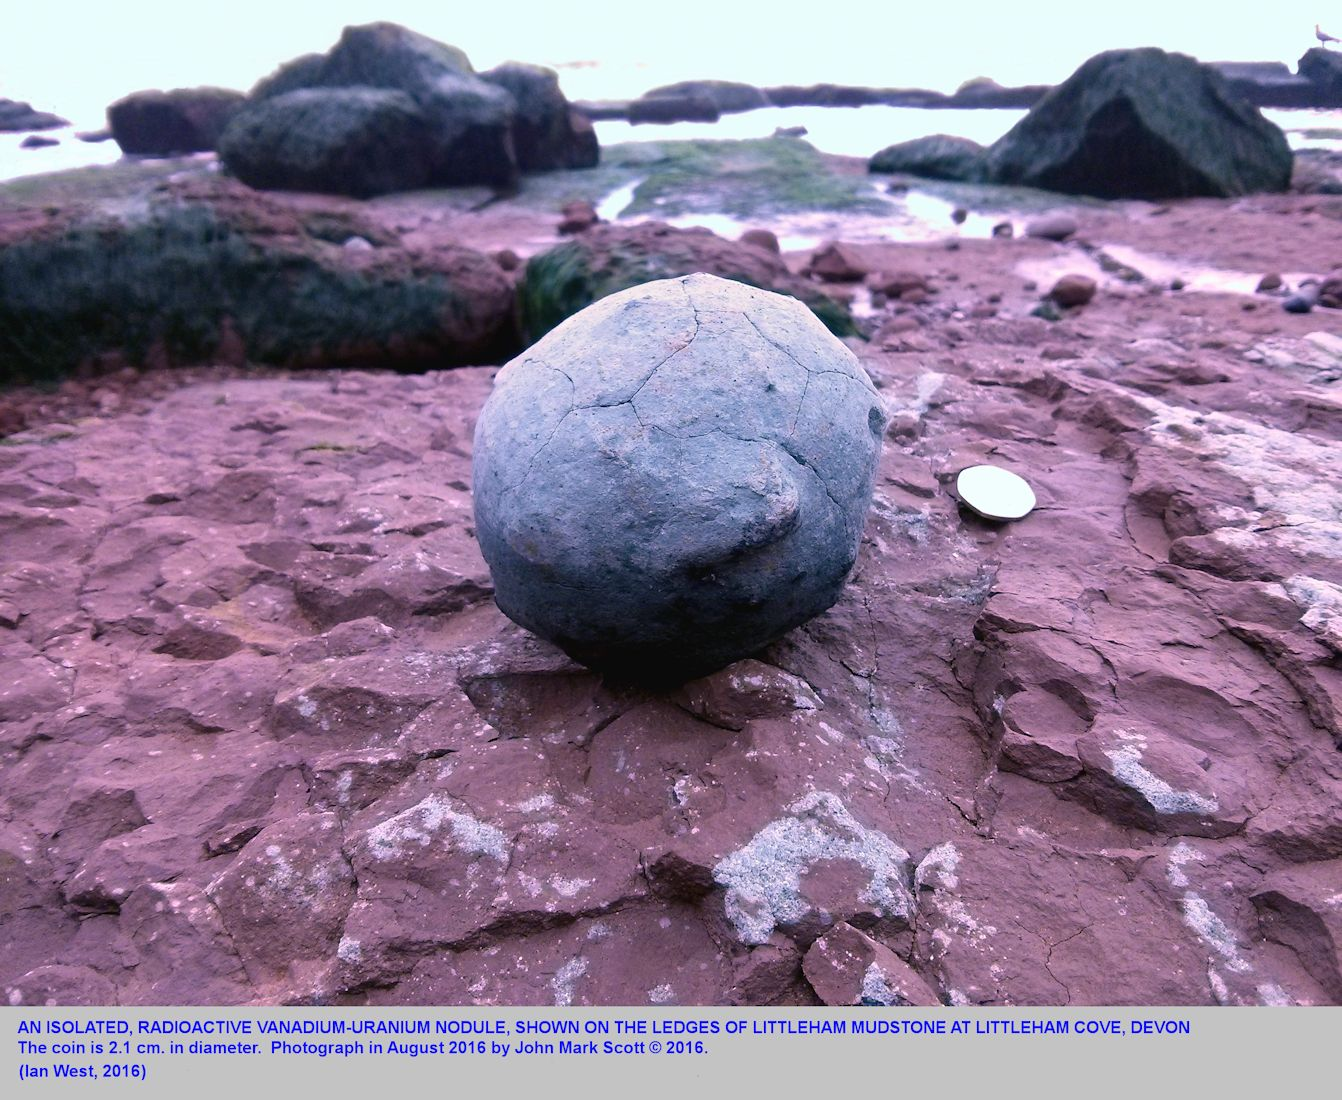 A large spherical, radioactive vanadium-uranium nodule found at Littleham Cove, Budleigh Salterton, Devon, and placed on a beach ledge of the Littleham Mudstone Formation from which it came - photograph by Jason Mark Scott, August 2016